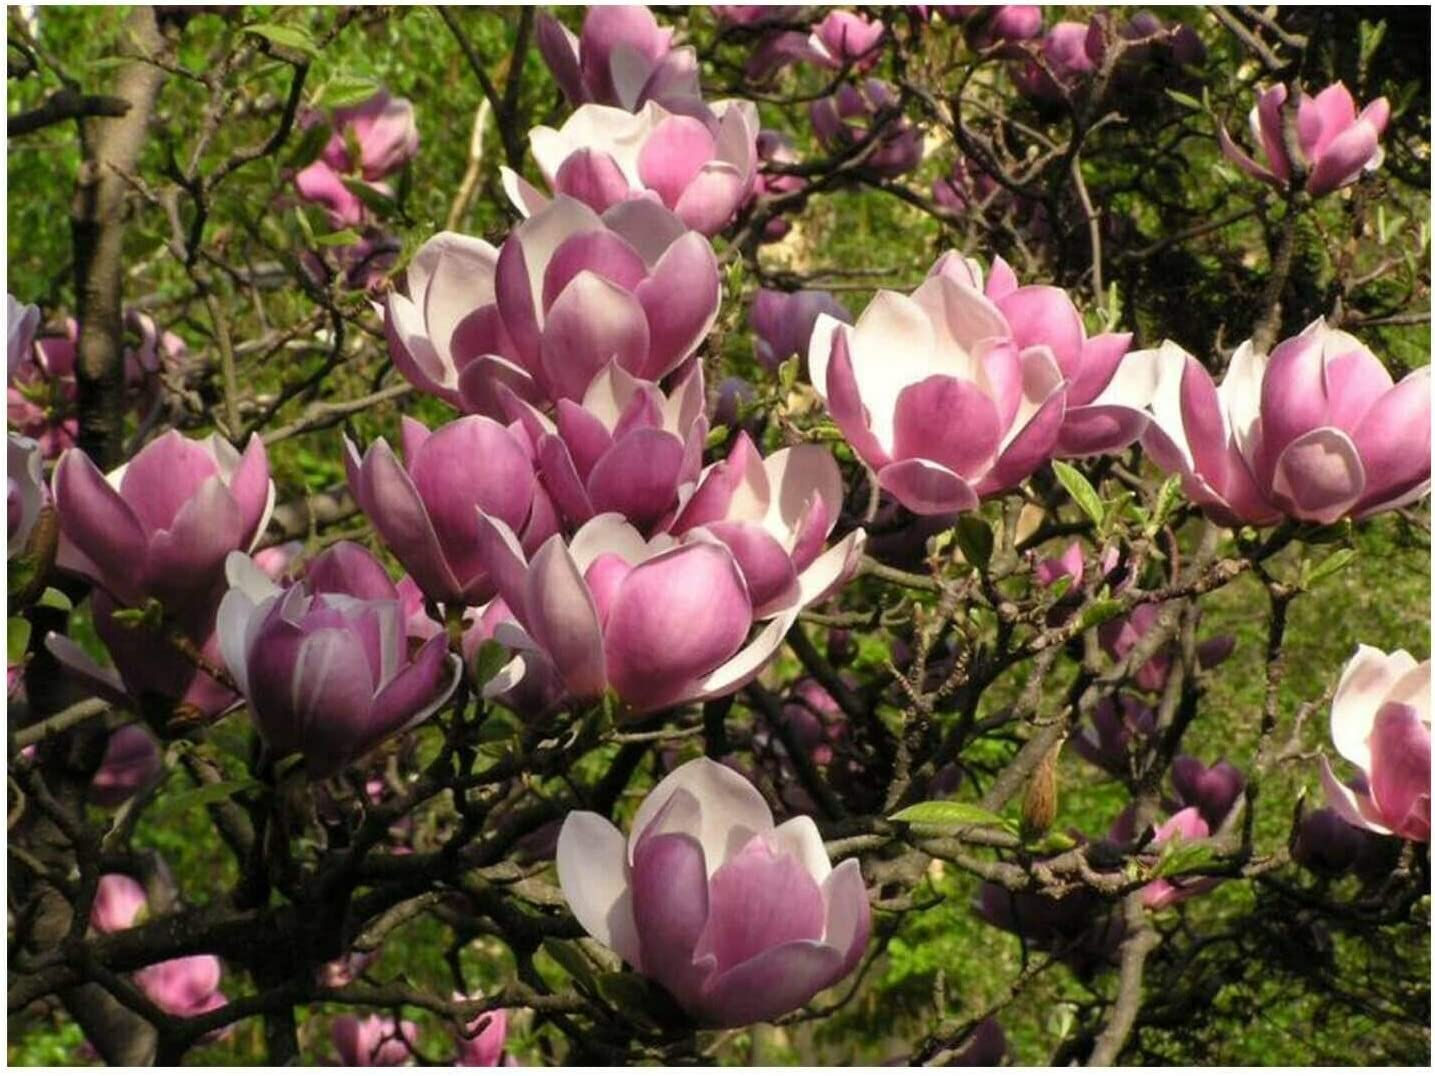 Omaha Max 83% OFF Mall Magnolia Trees Assortment - 1 Each Ann Jane Saucer 3 and in